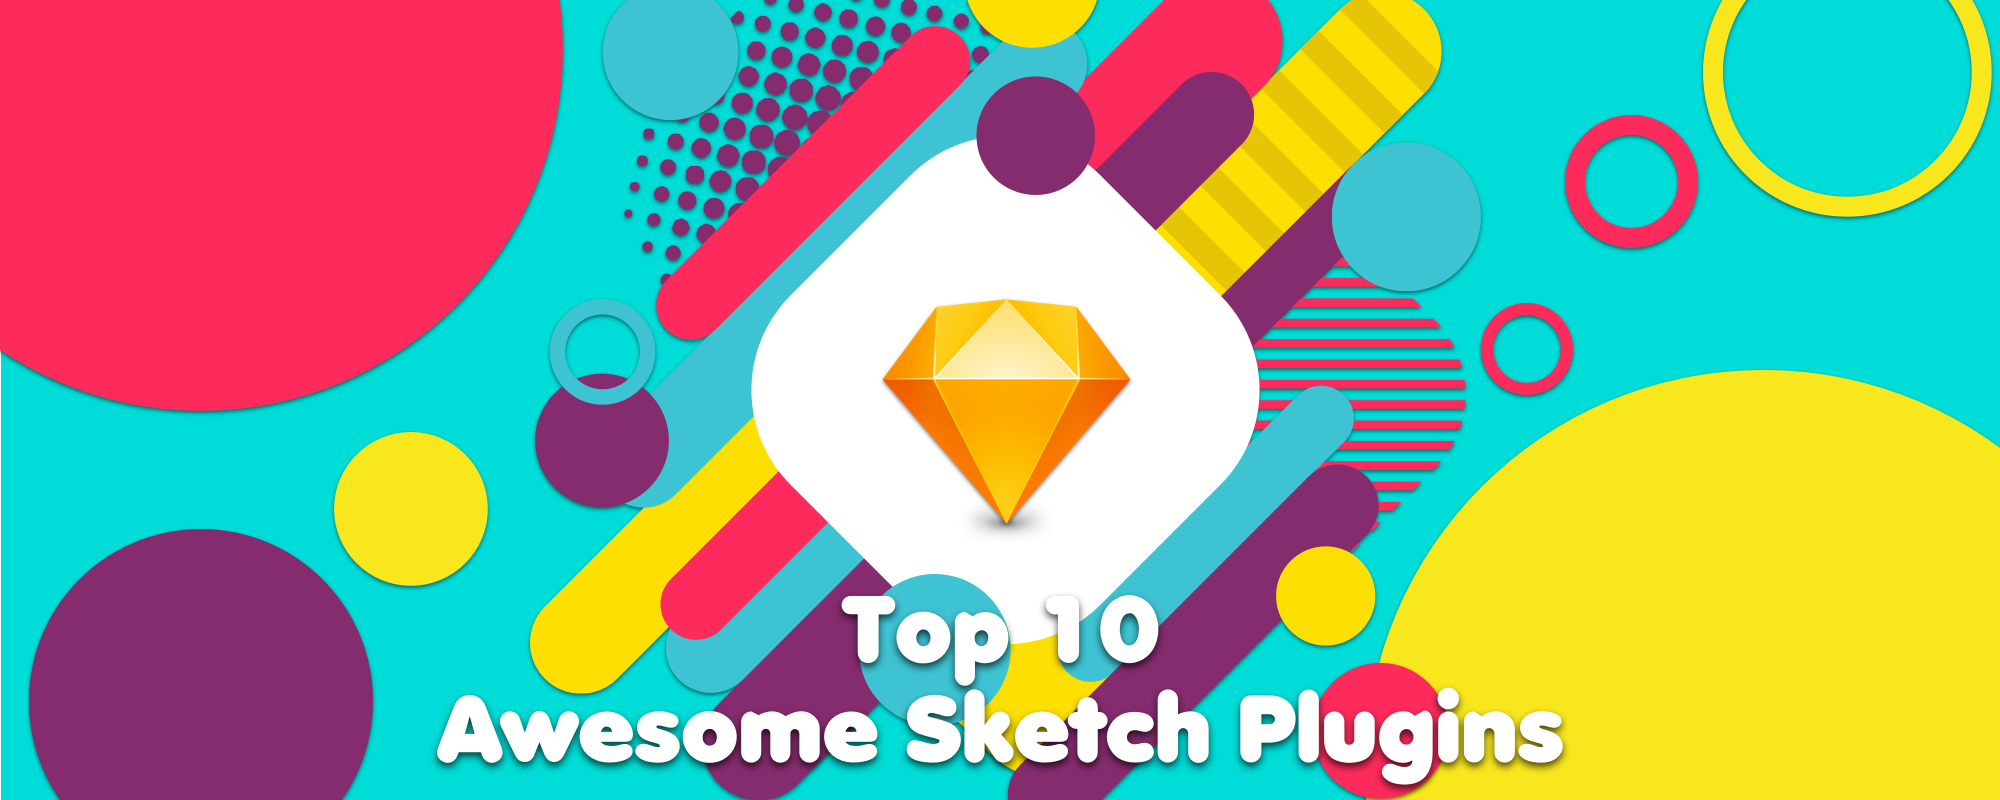 Top 10 Awesome Sketch Plugins - Prototypr